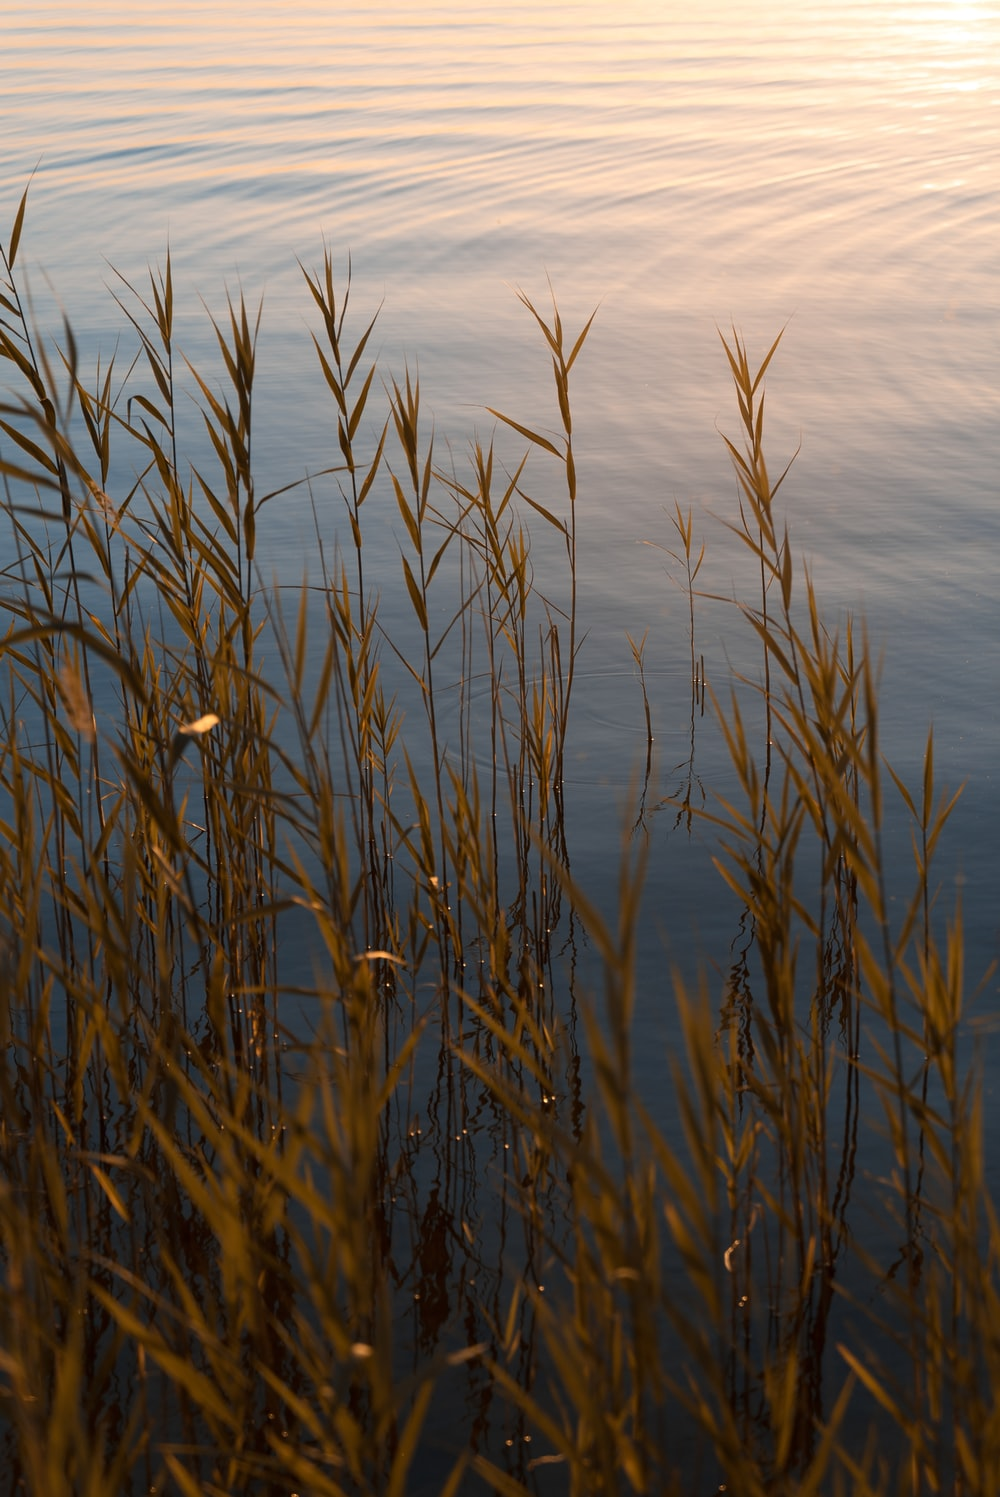 brown grass on body of water during daytime